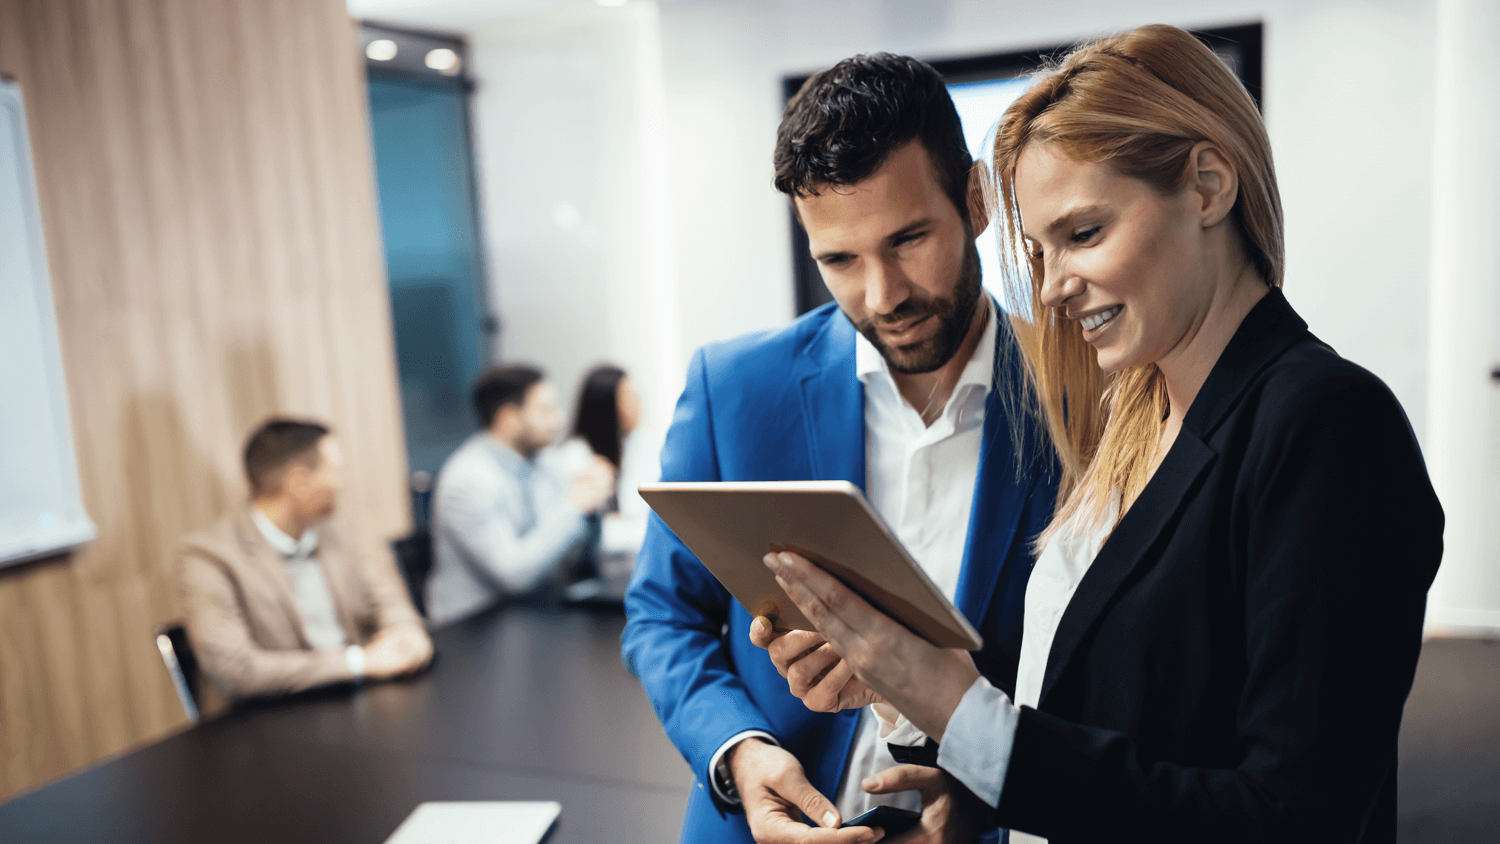 3 Ways Technology Helps Scale Your Commercial Real Estate Business